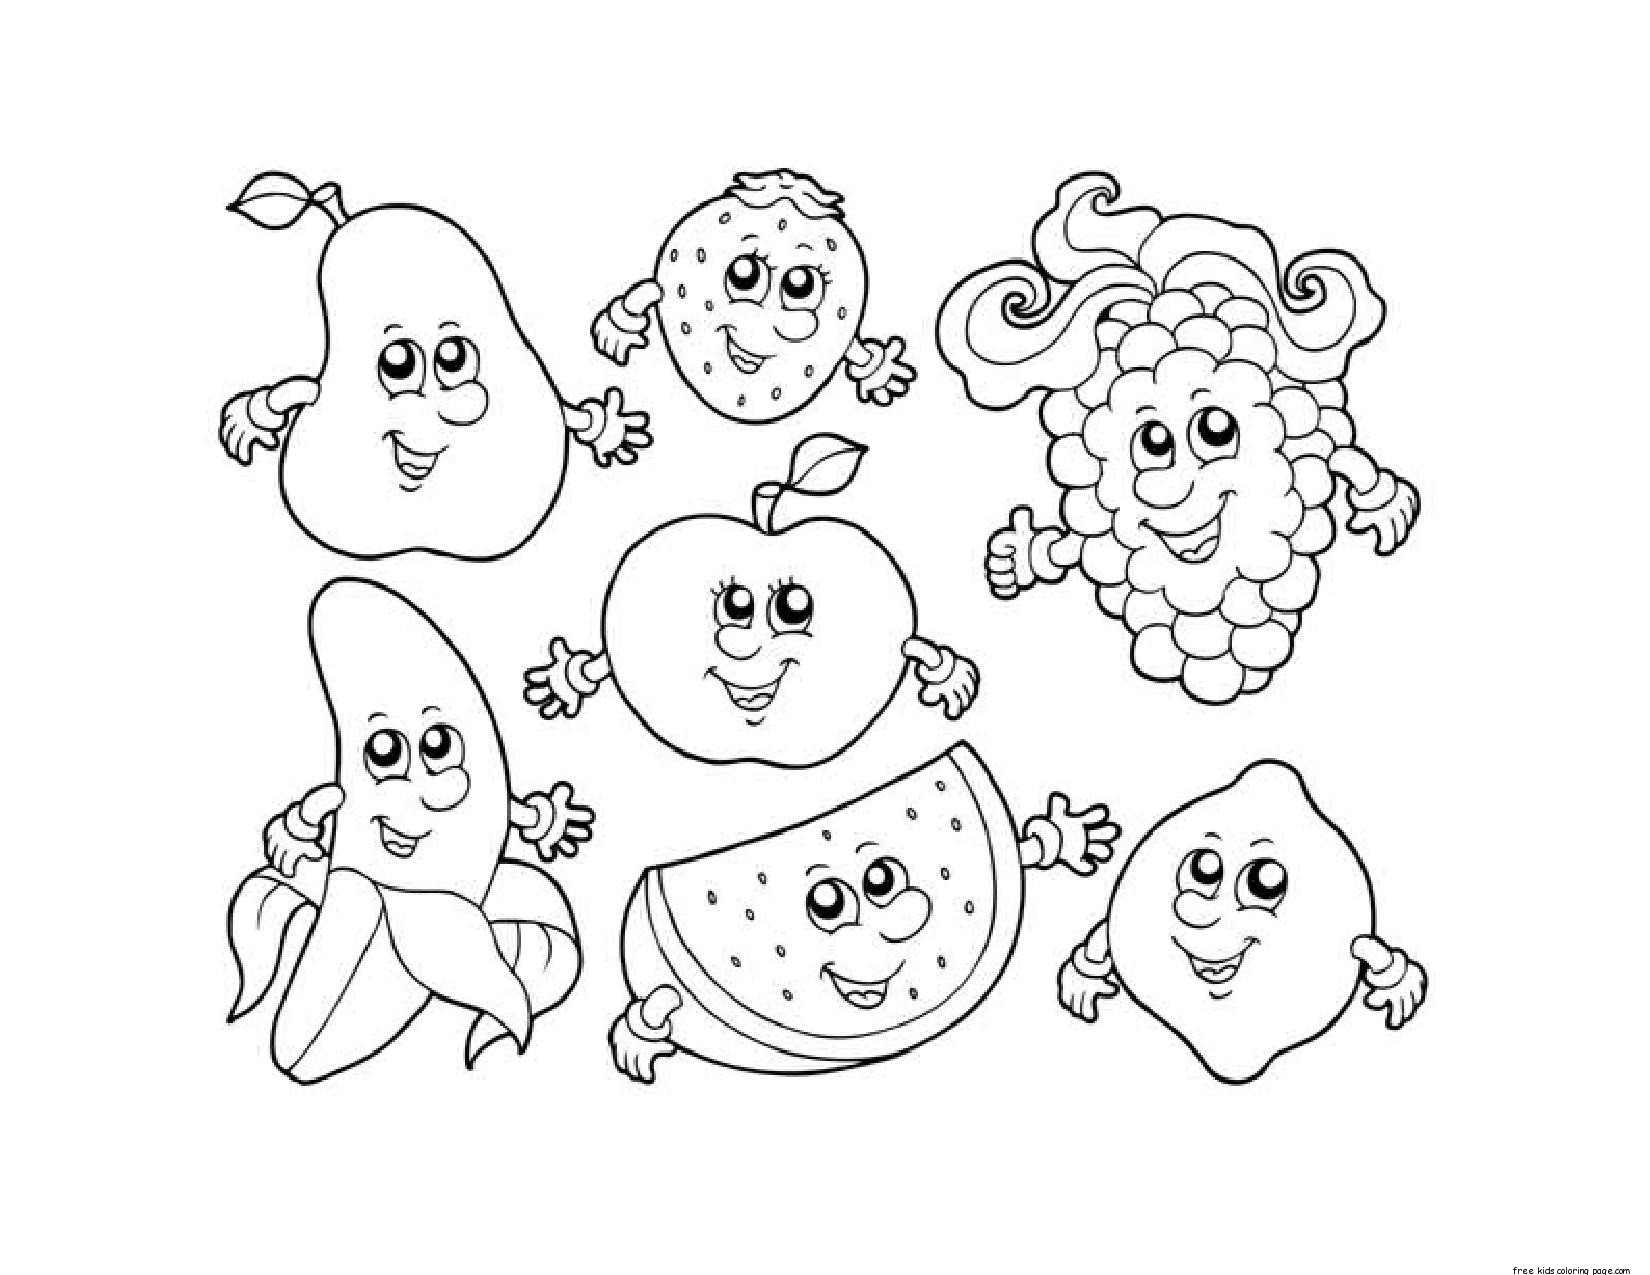 Apple watermelon strawberry banana grape coloring in for Apple coloring pages